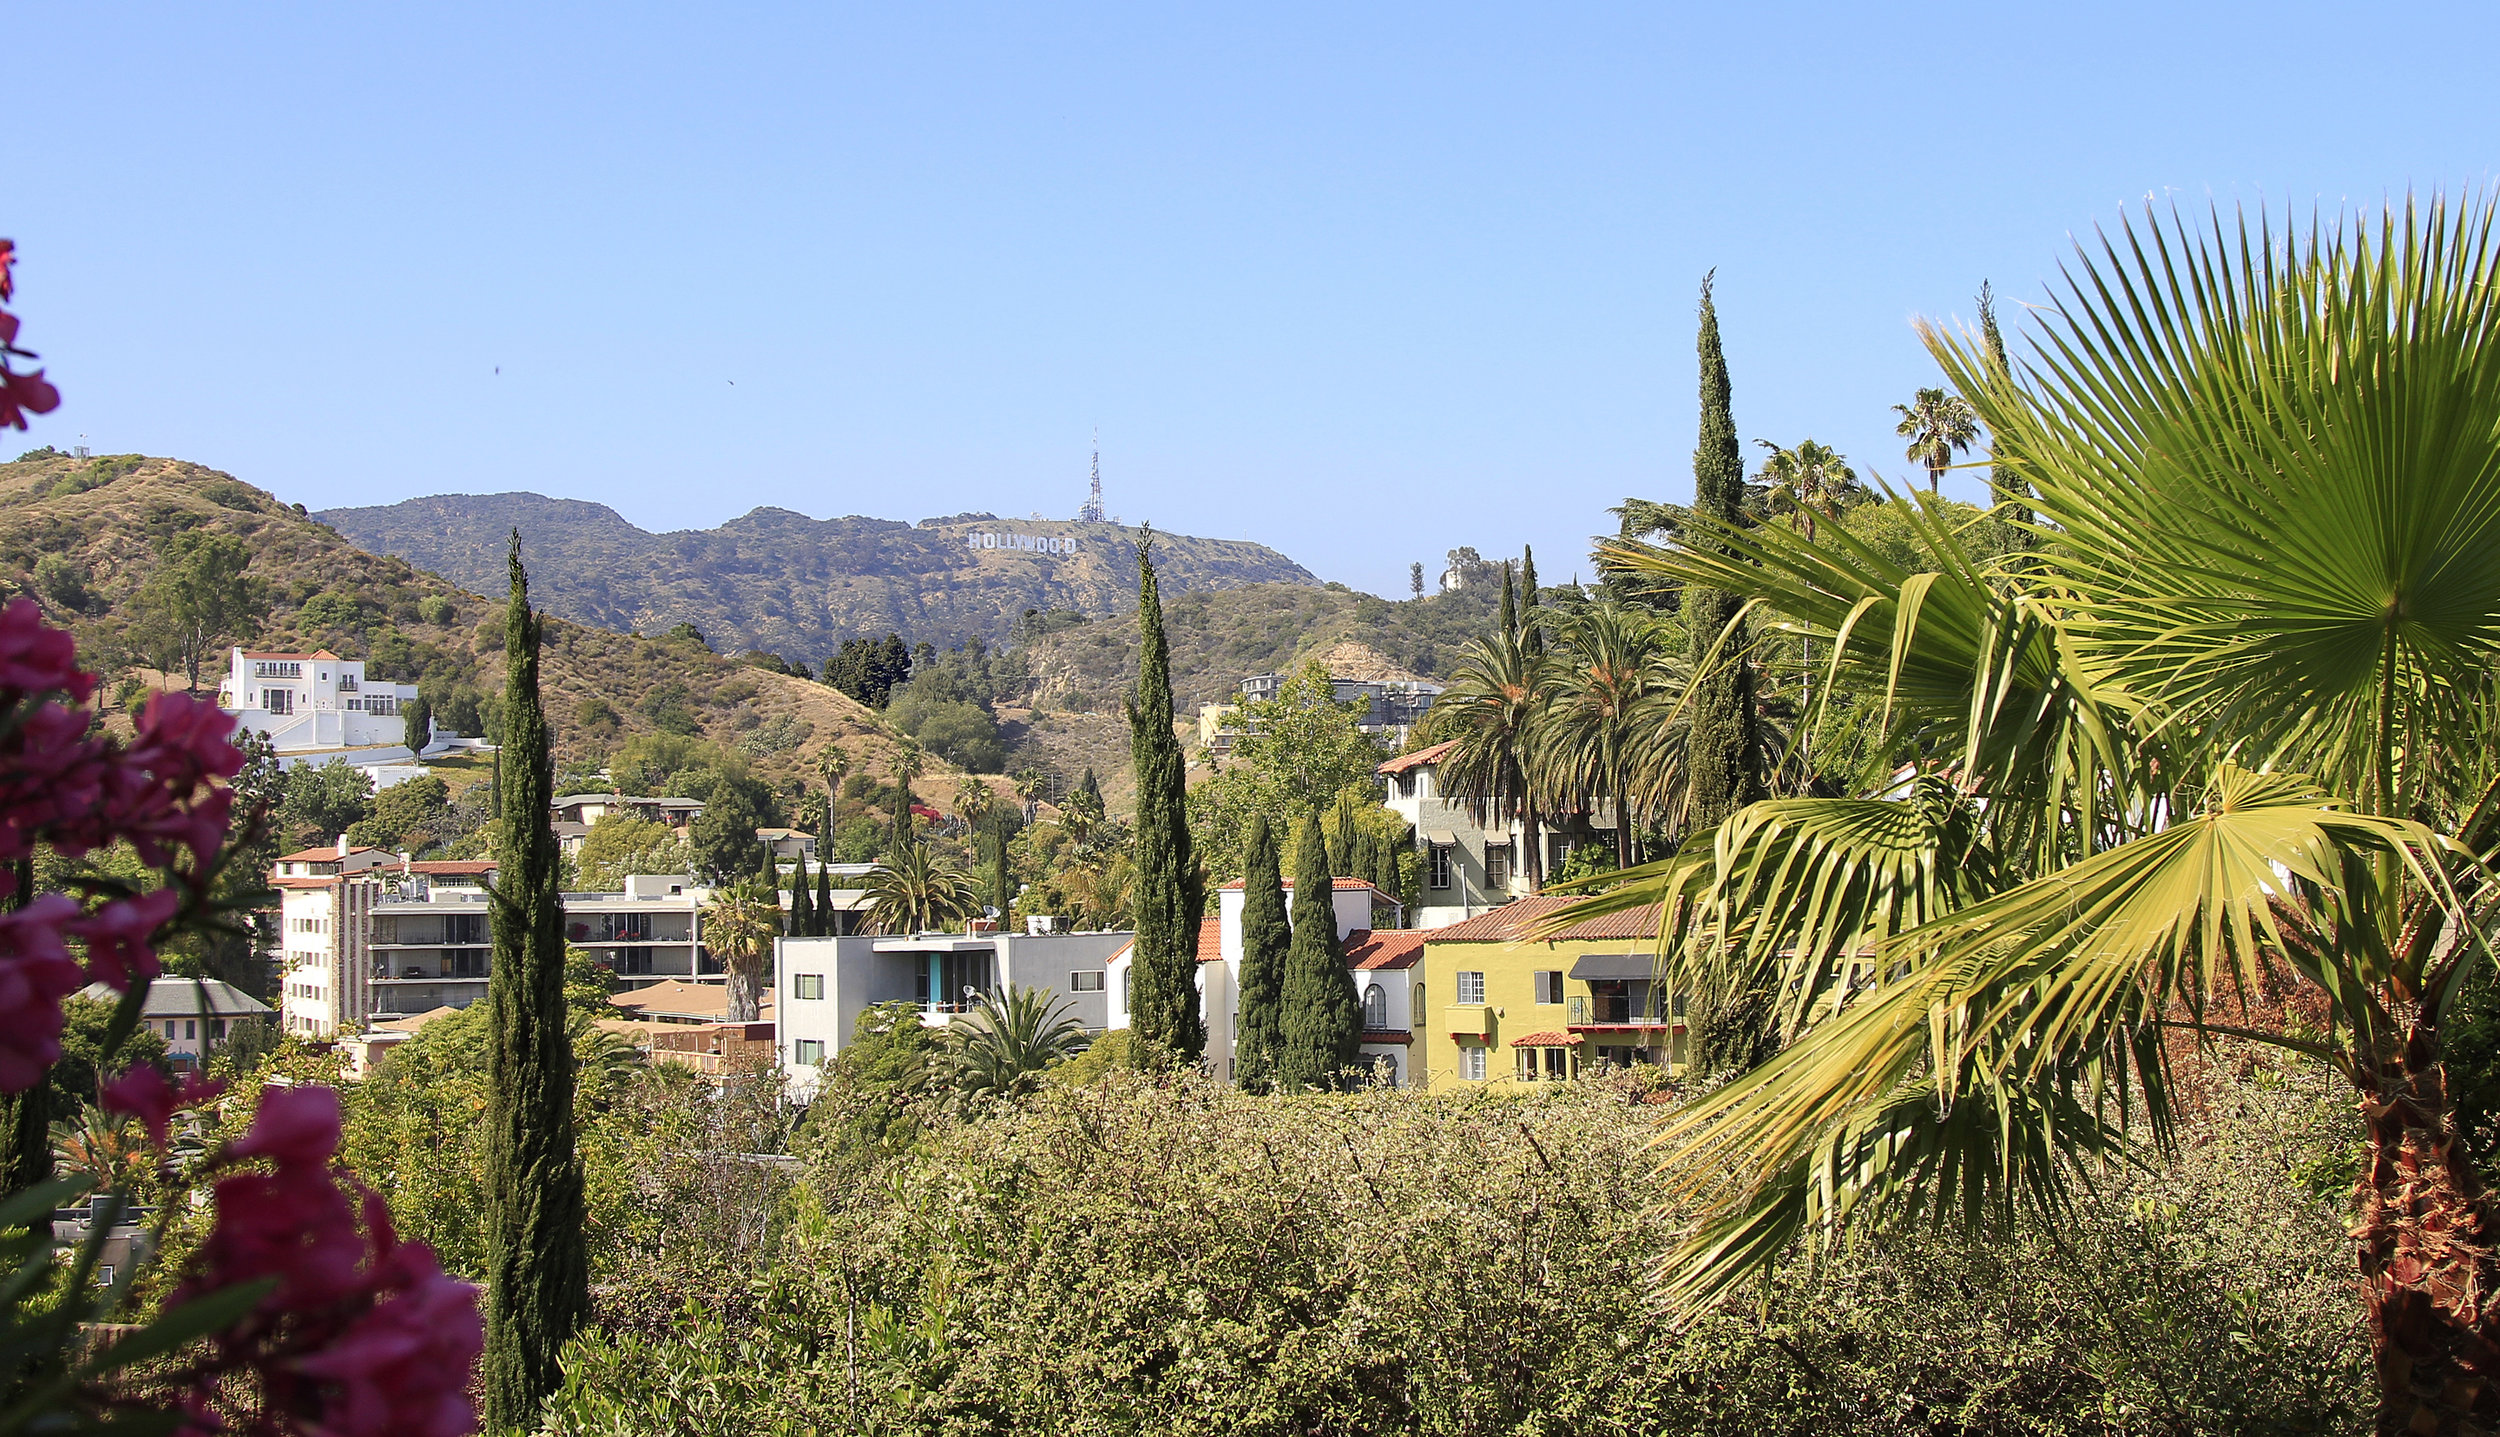 Historic Whitley Heights, a small enclave in the Hollywood Hills, was specifically designed to resemble a Mediterranean style village. In the distance is the famous Hollywood sign atop Mt. Lee.   Learn more about the Whitley Heights and other neighborhoods in the Hollywood Hills East...